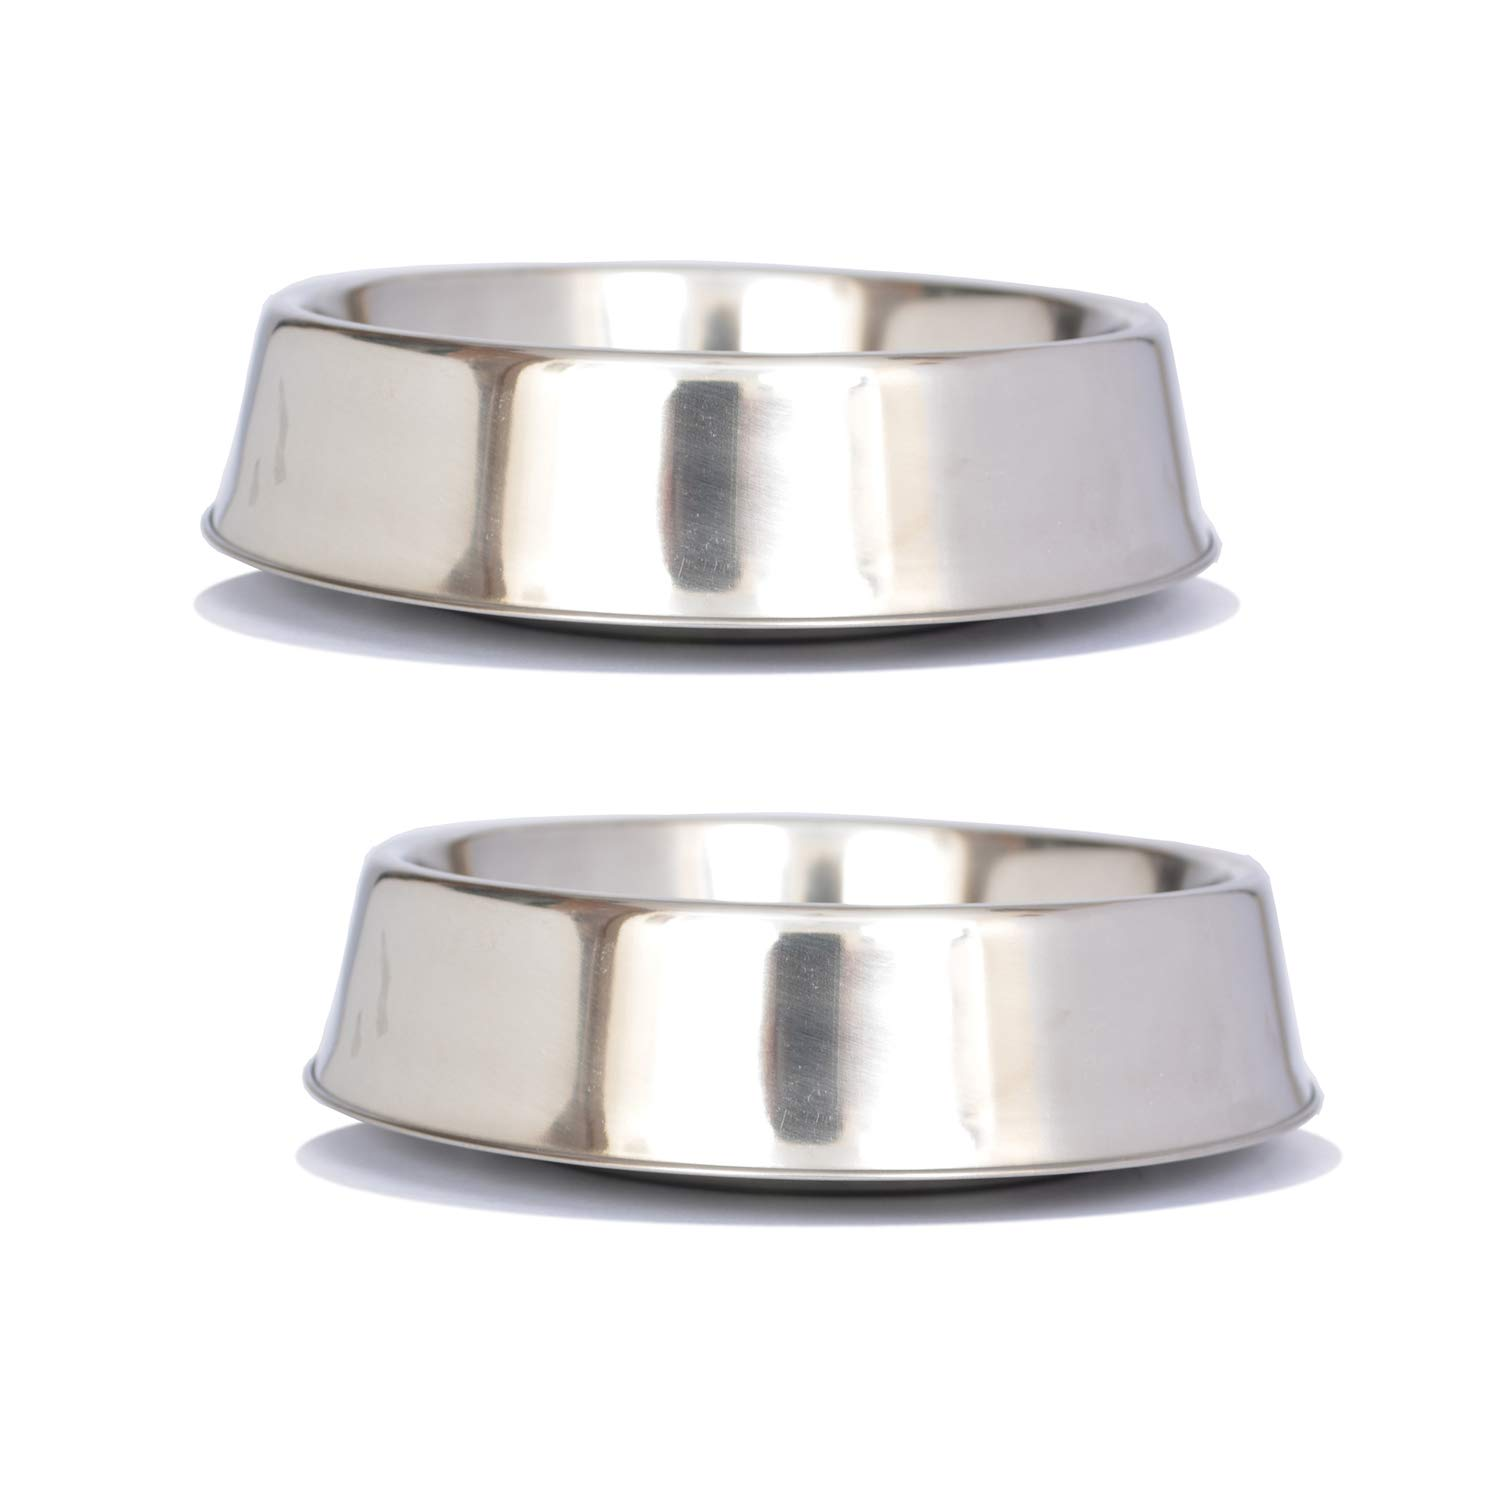 Iconic Pet 8 Cup Anti Ant Stainless Steel Non Skid Pet Bowl for Dog Or Cat (2 Pack), 64 oz by Iconic Pet